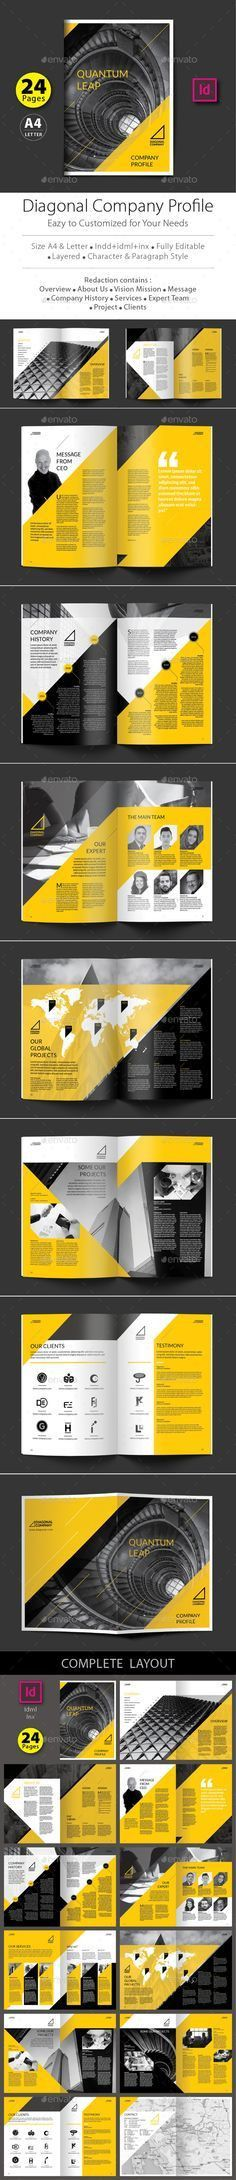 Horizontal Catalog A4 Template Free Font Used Print Ready with ...